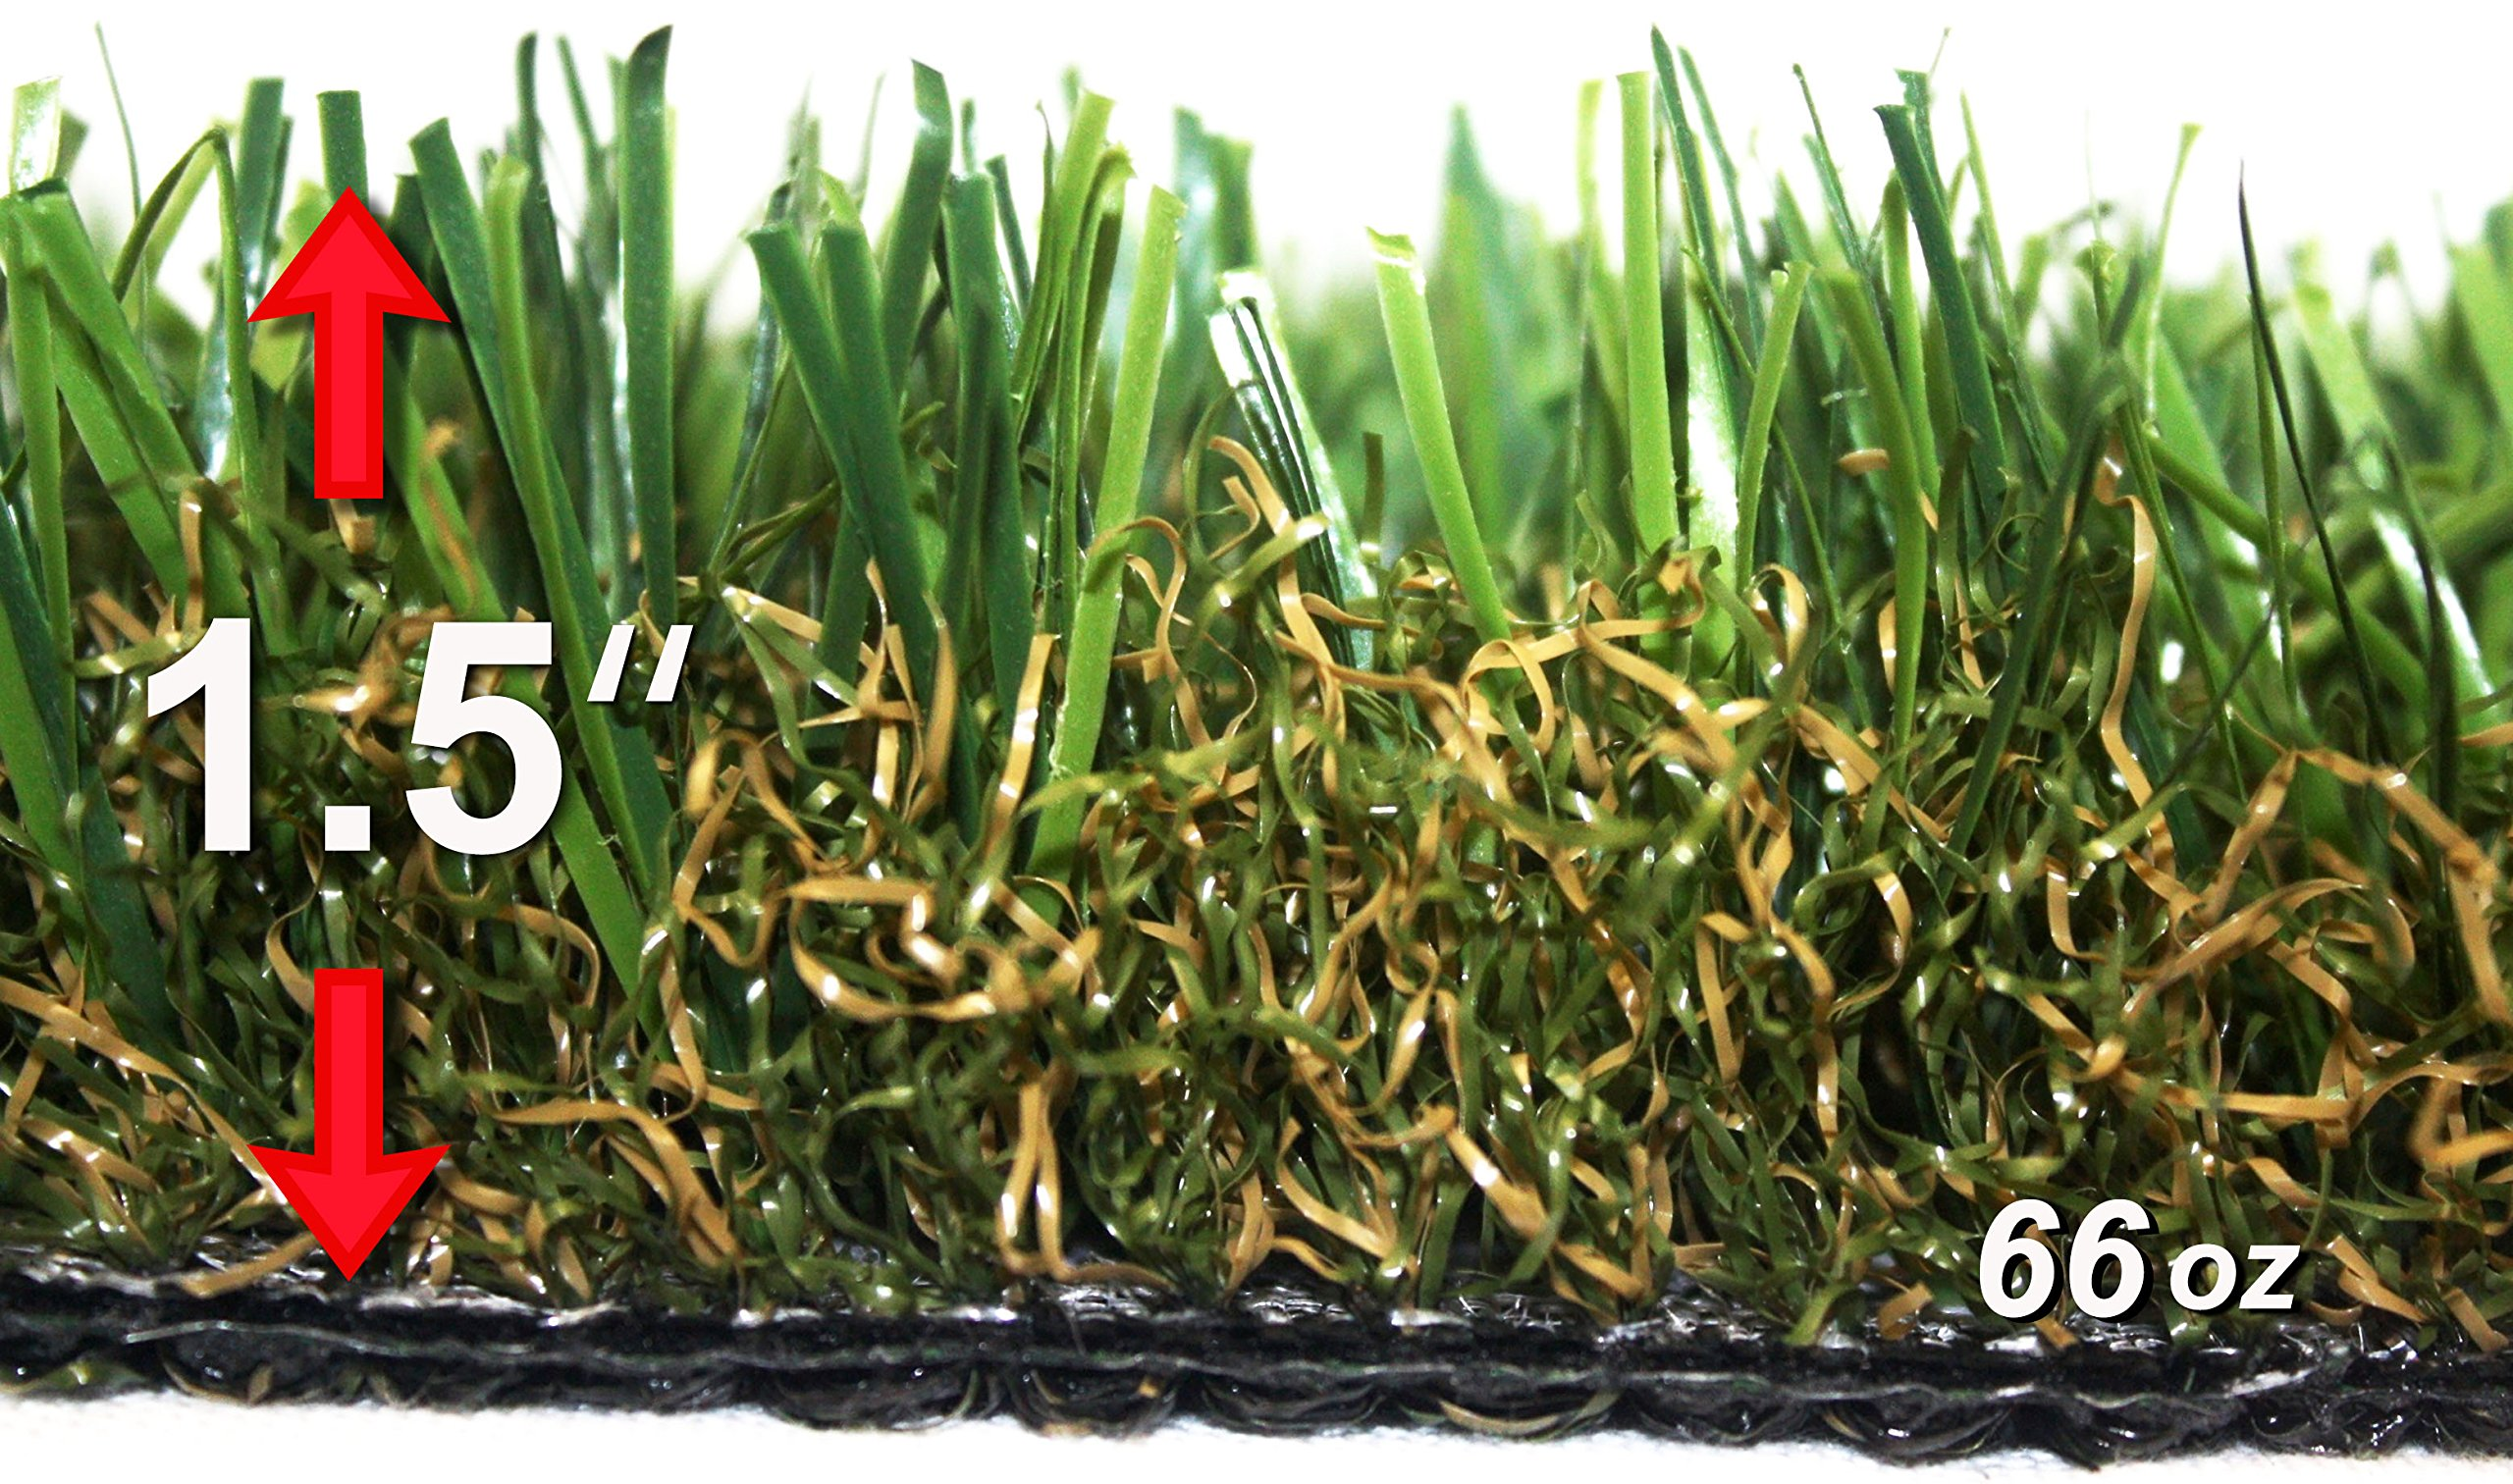 StarPro SPG-60 $2.35/sf ''Great'' Centipede SW Natural Artificial Synthetic Grass Lawn Turf, 18ftx15ft